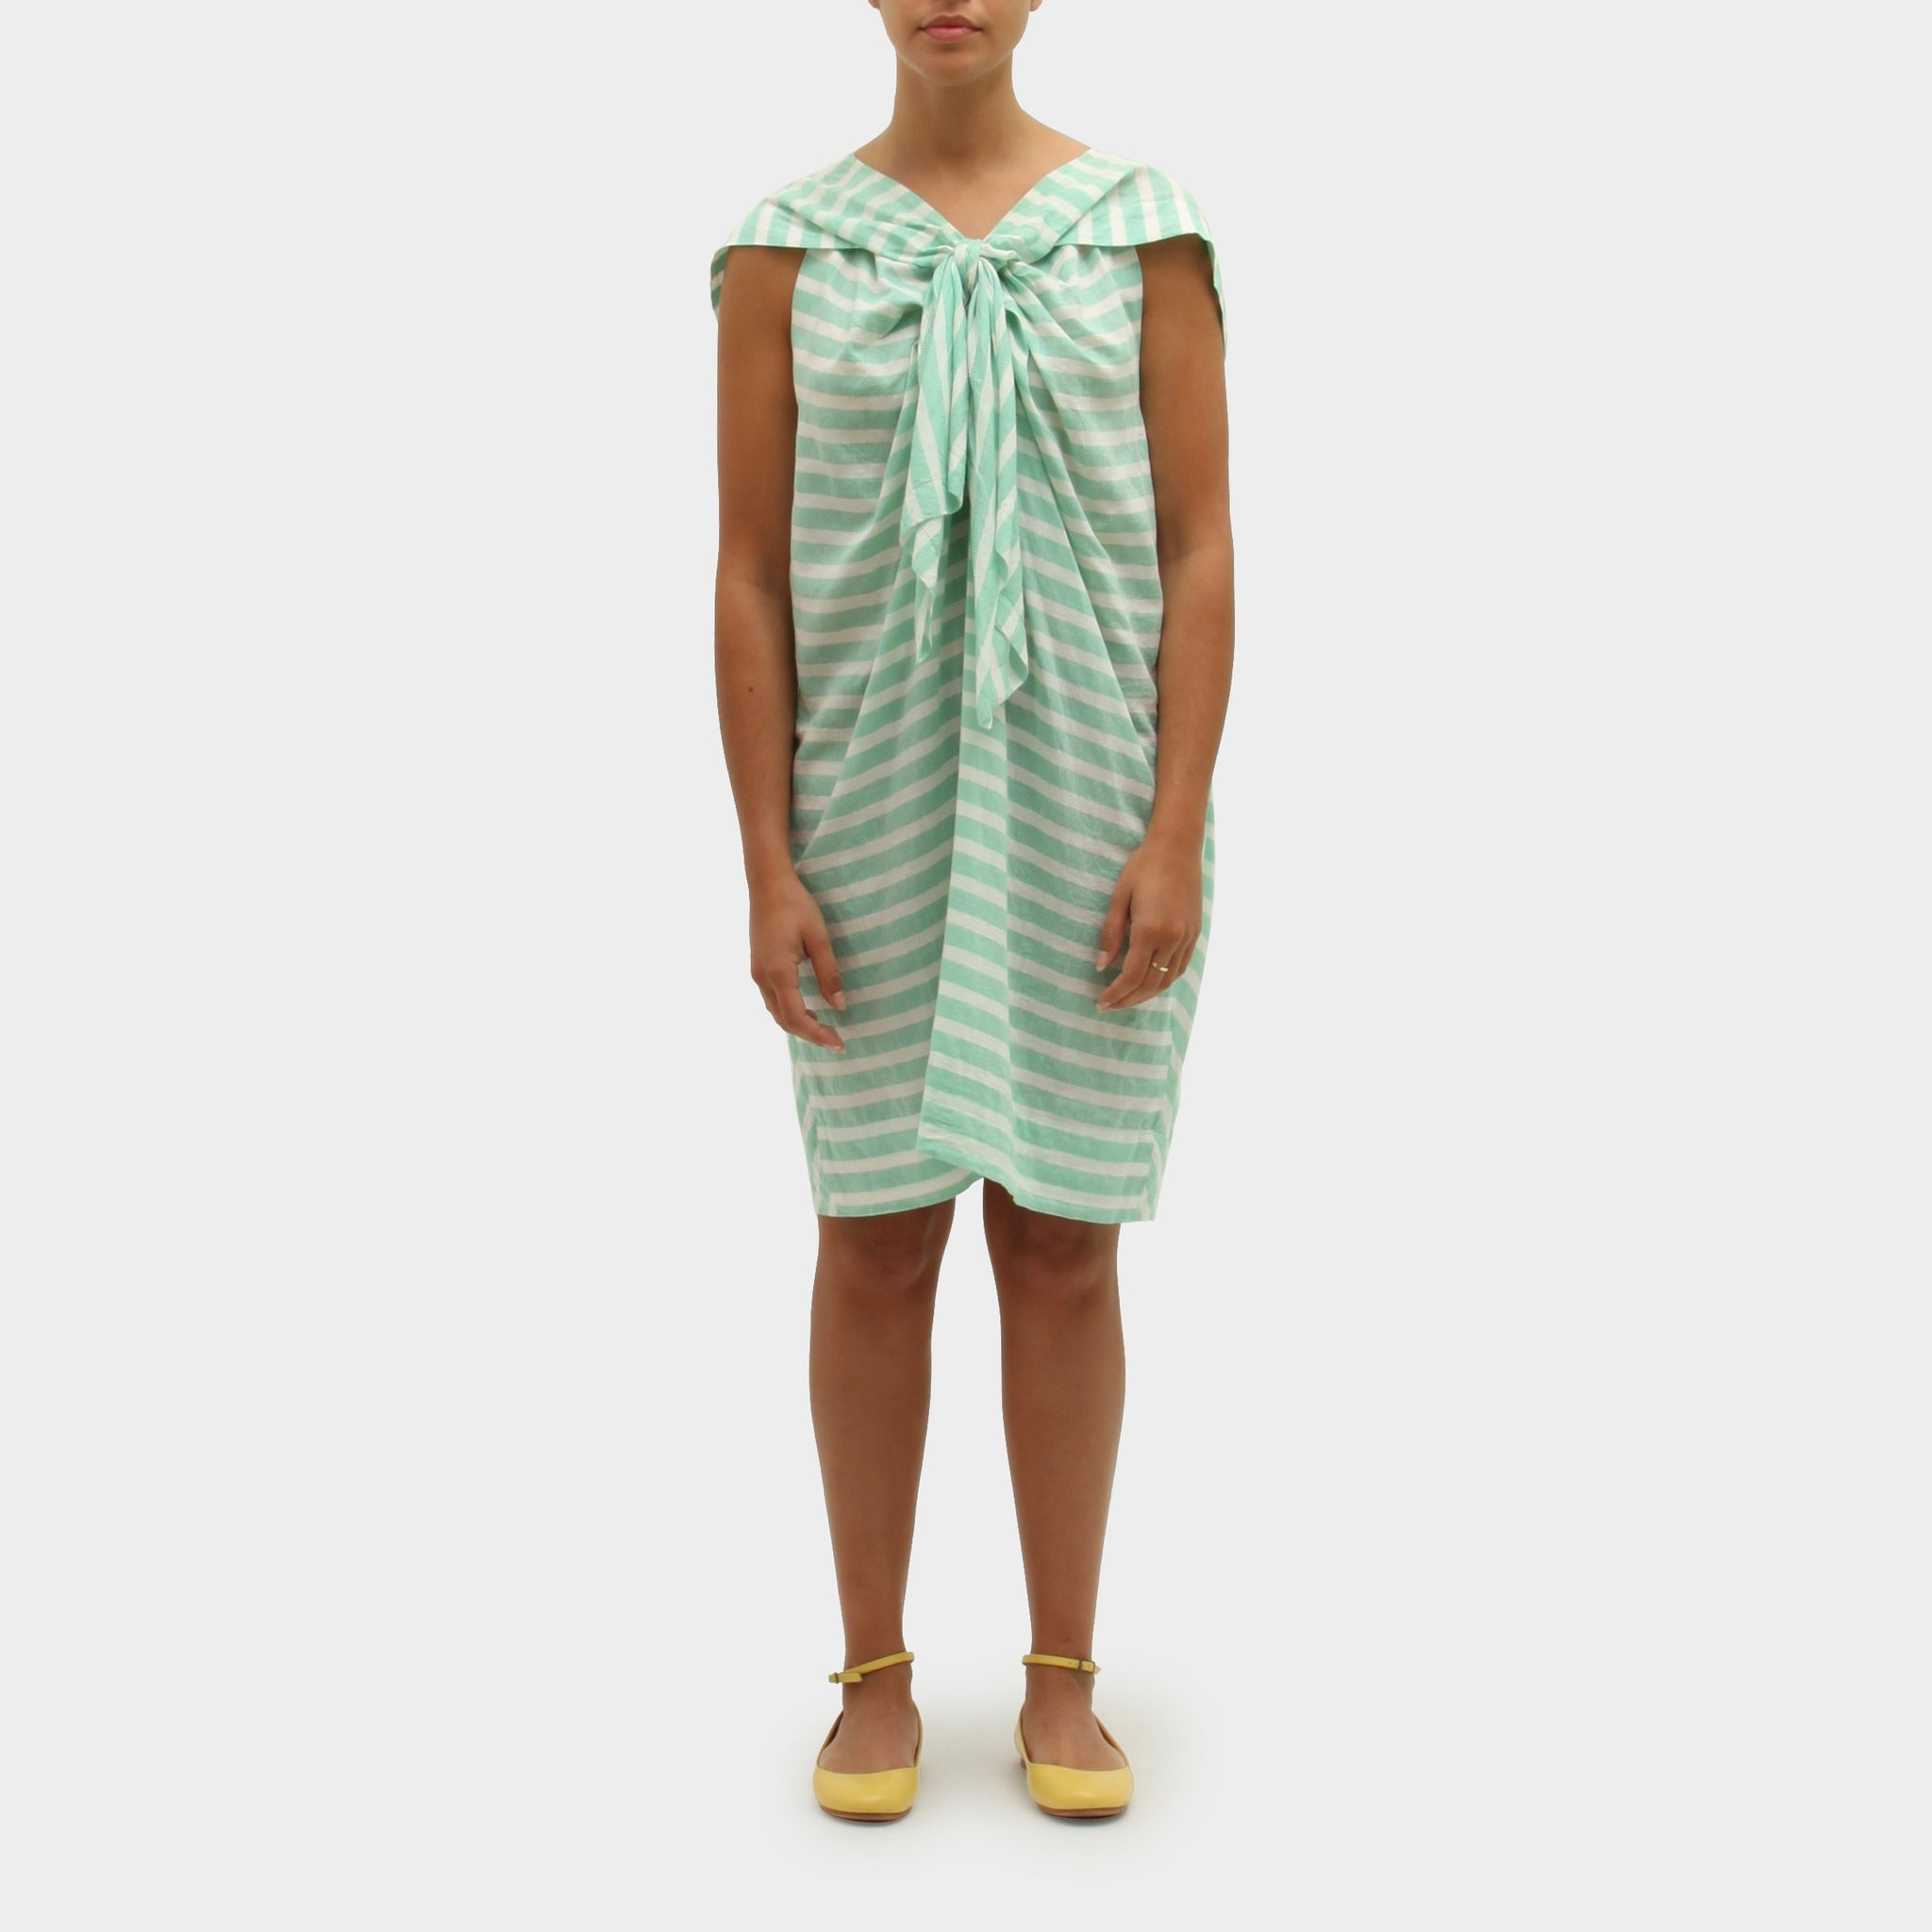 Bernard Wilhelm Striped Tie-Front Dress